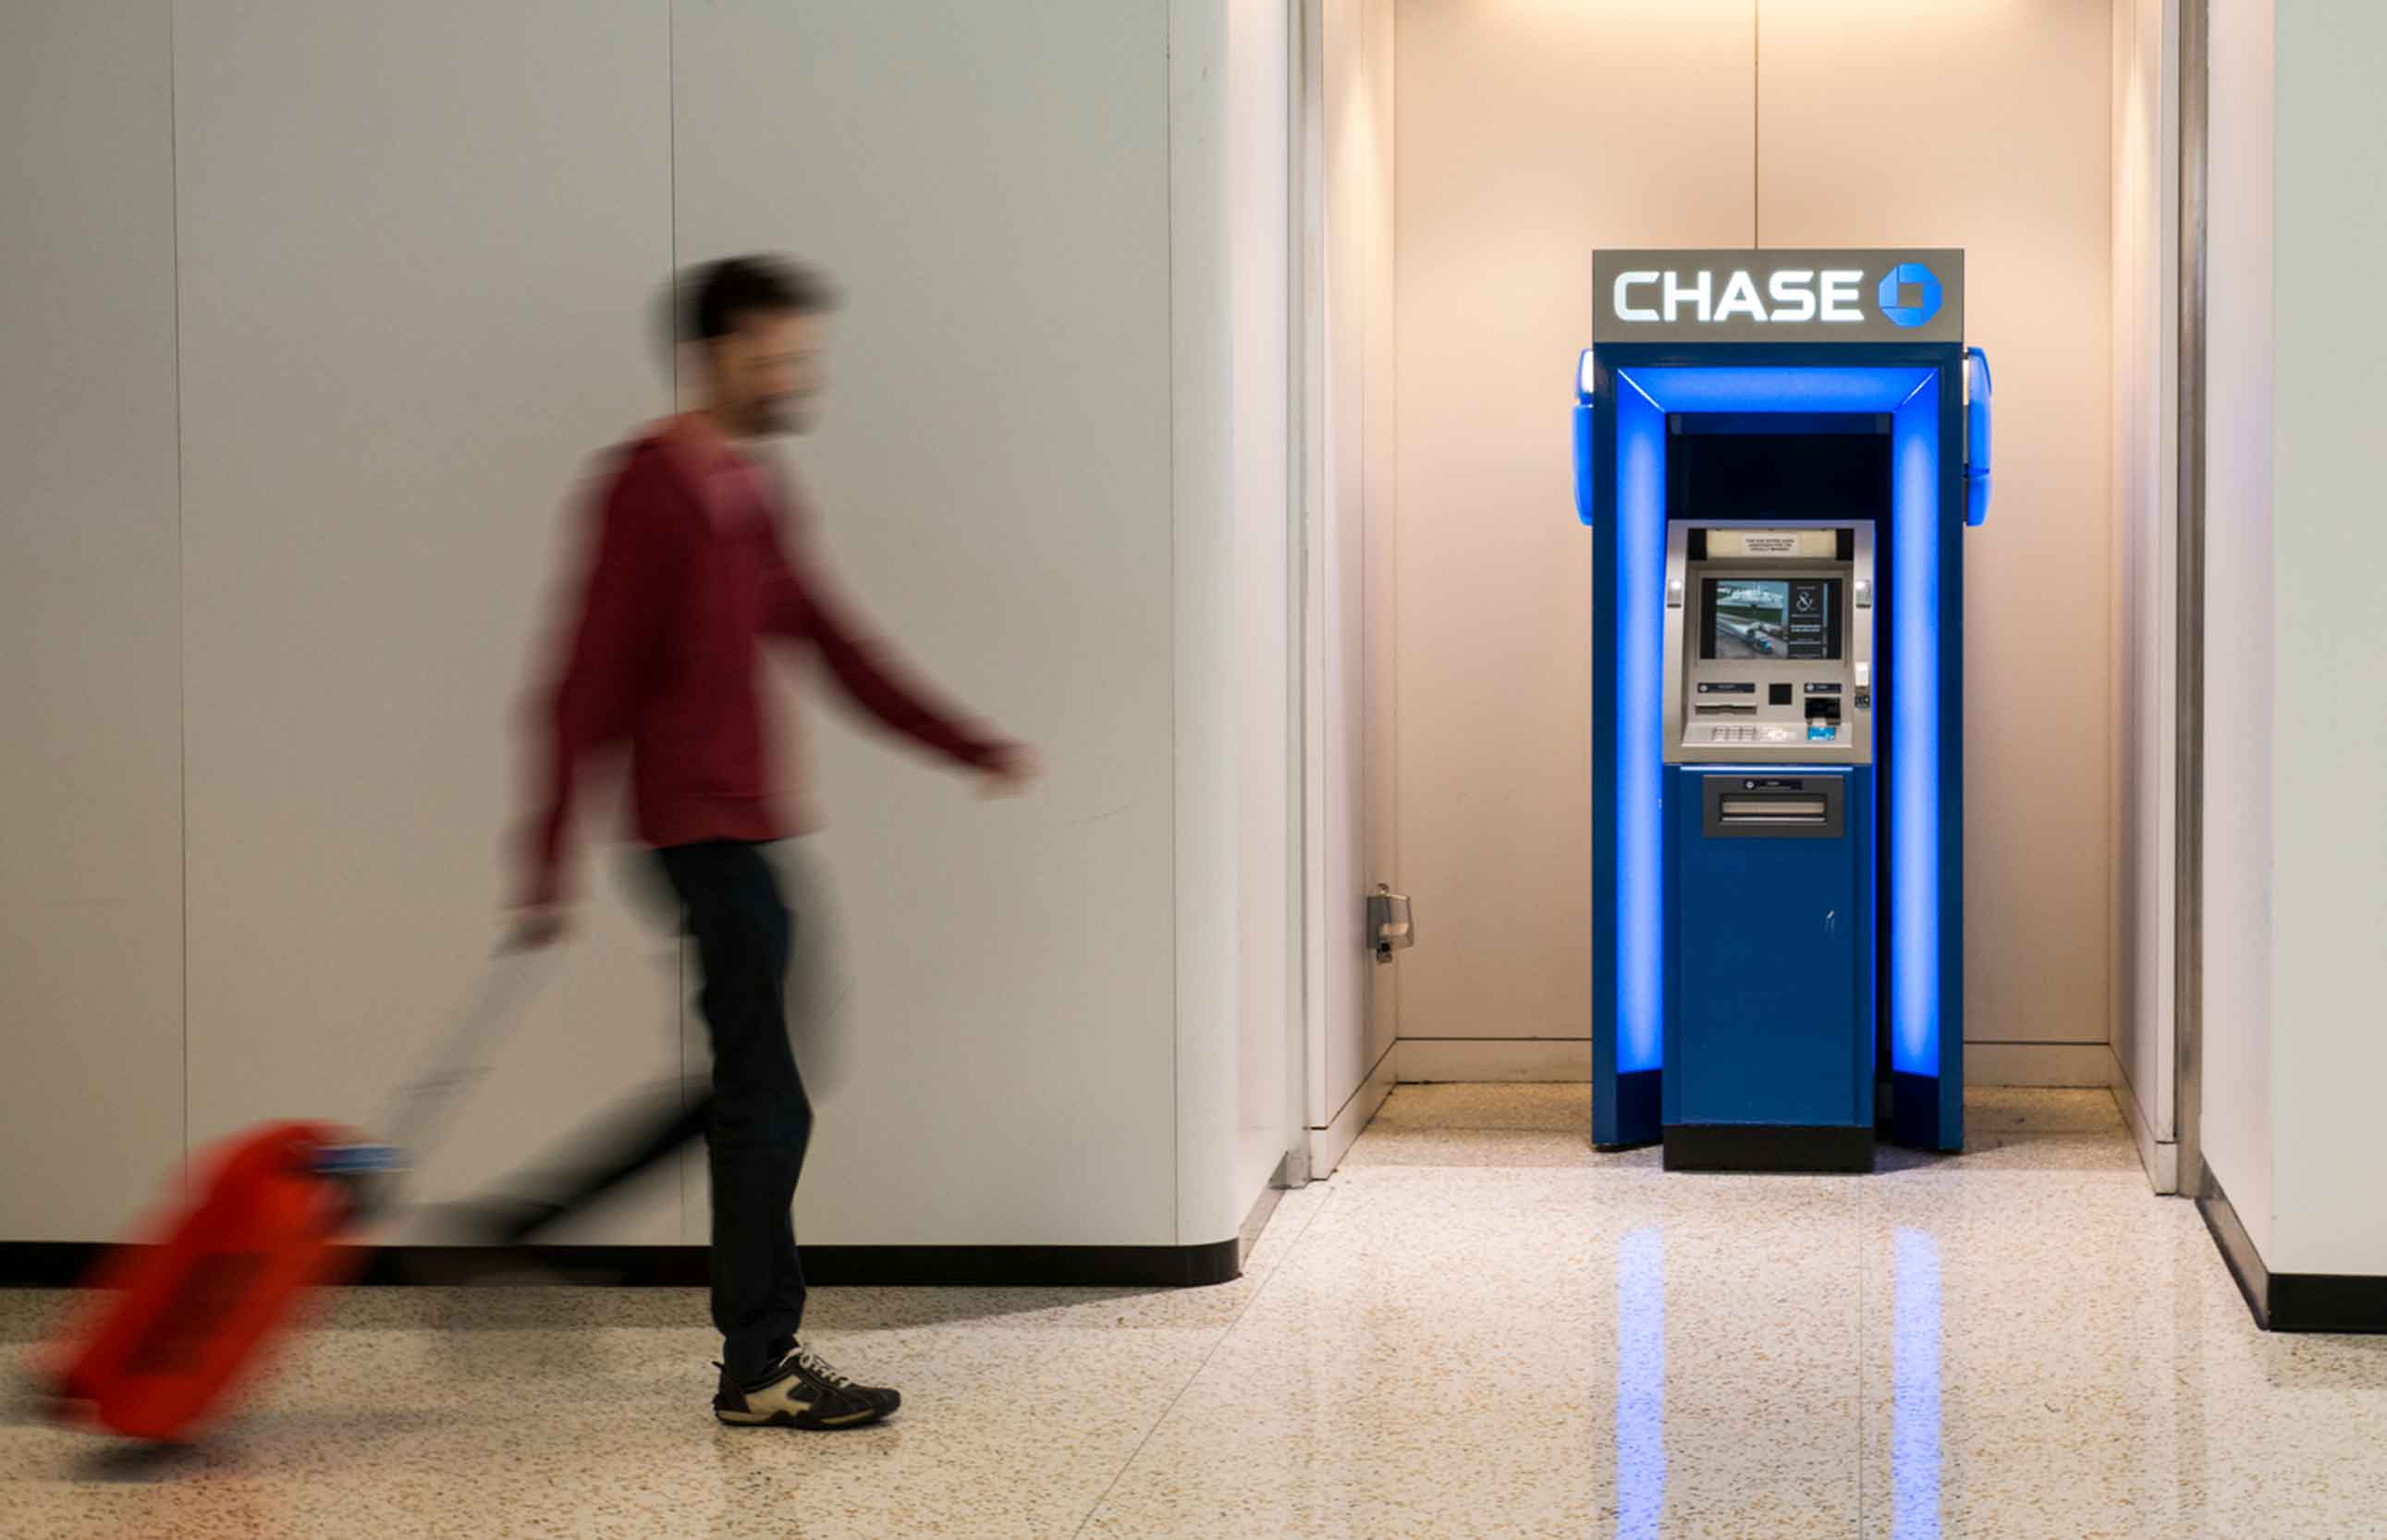 chase-atms-walgreens